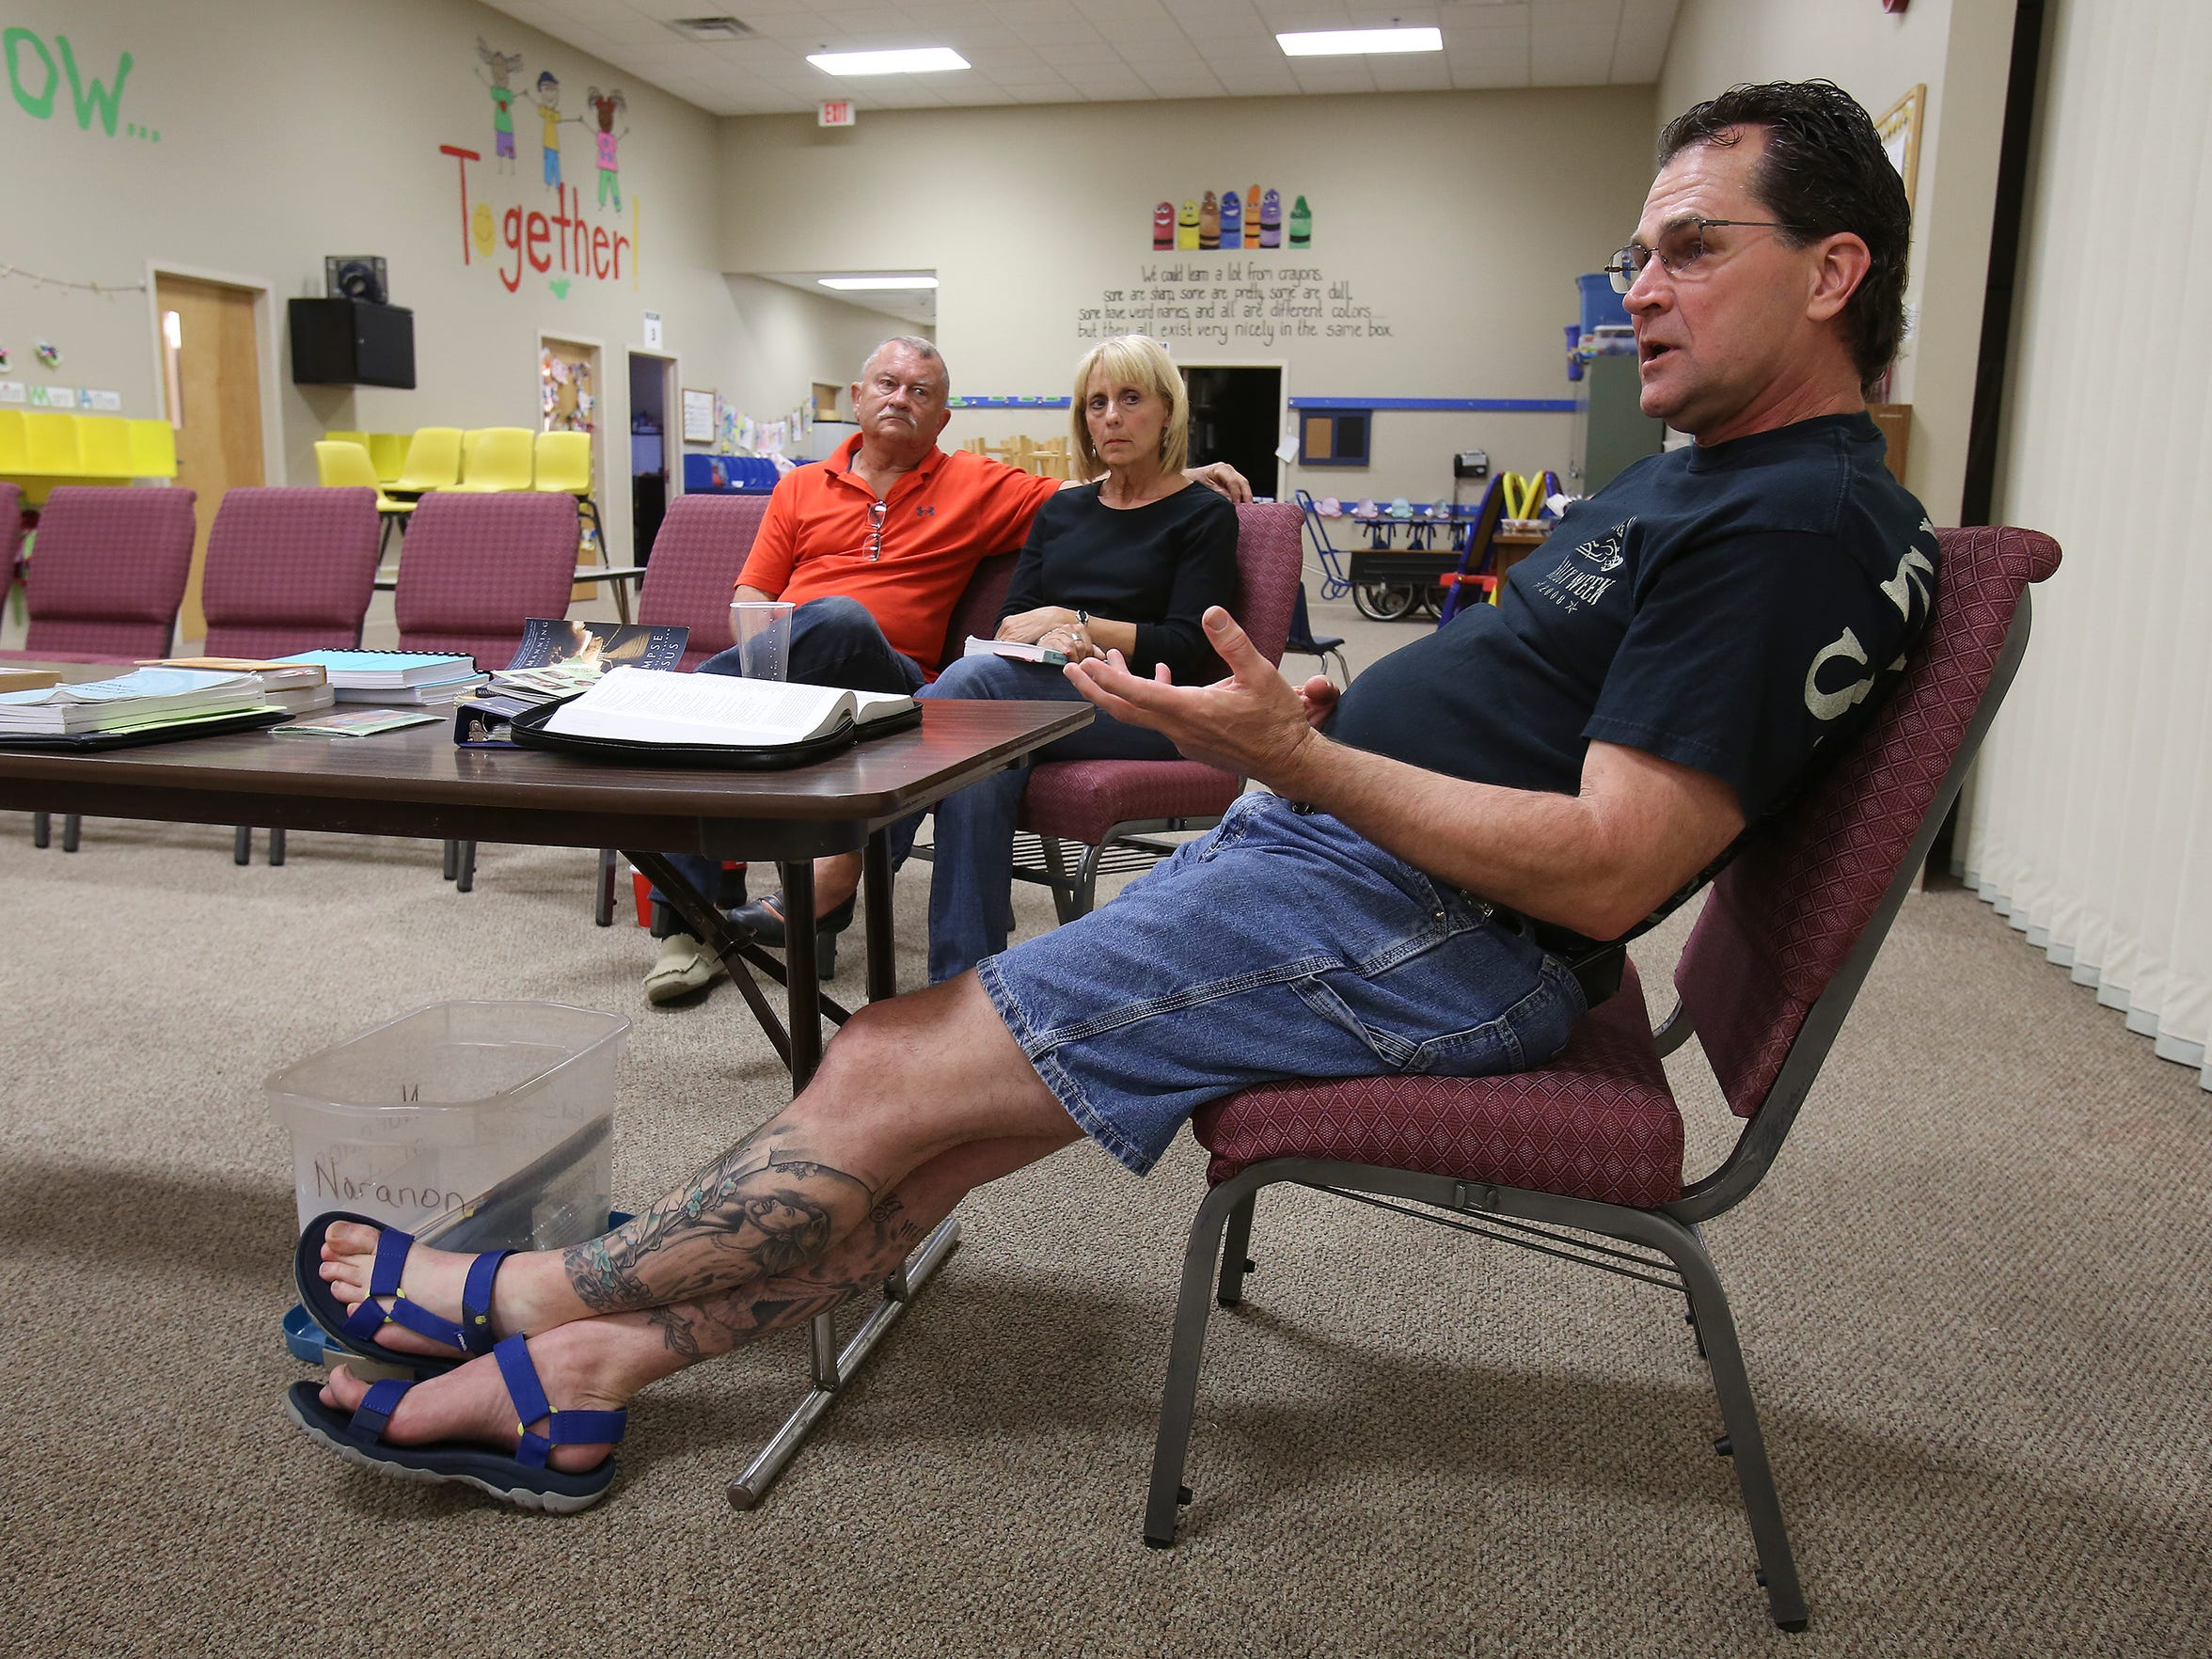 Facilitator Ed Small, right, makes remarks during a